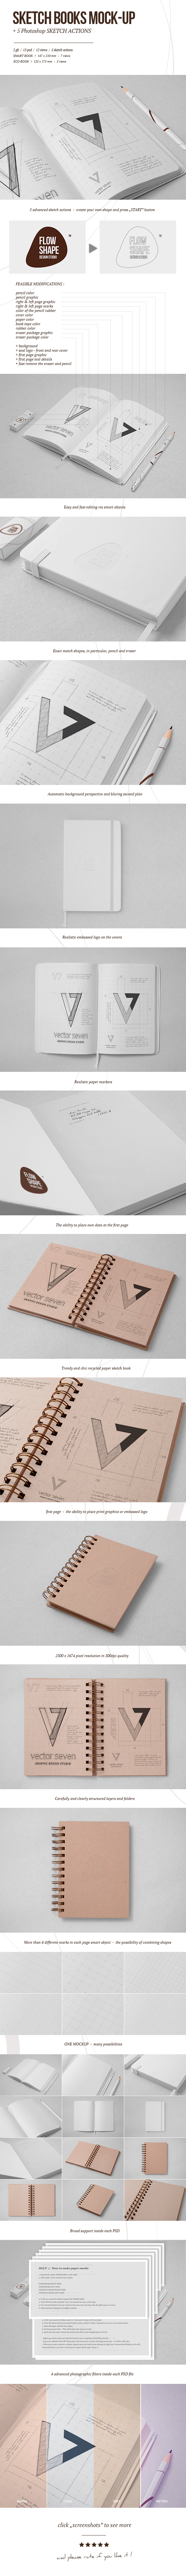 Sketchbook Mock-up & Sketch Actions on Behance